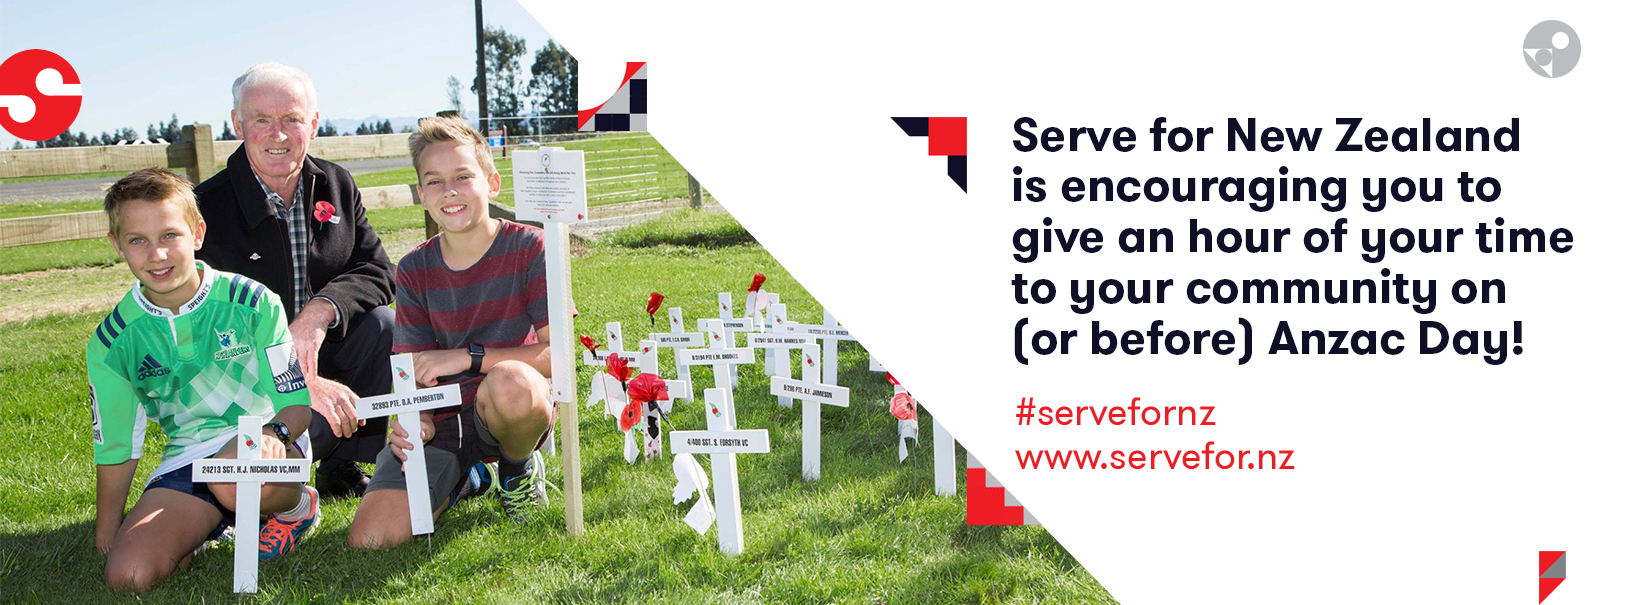 Get involved in Serve for New Zealand